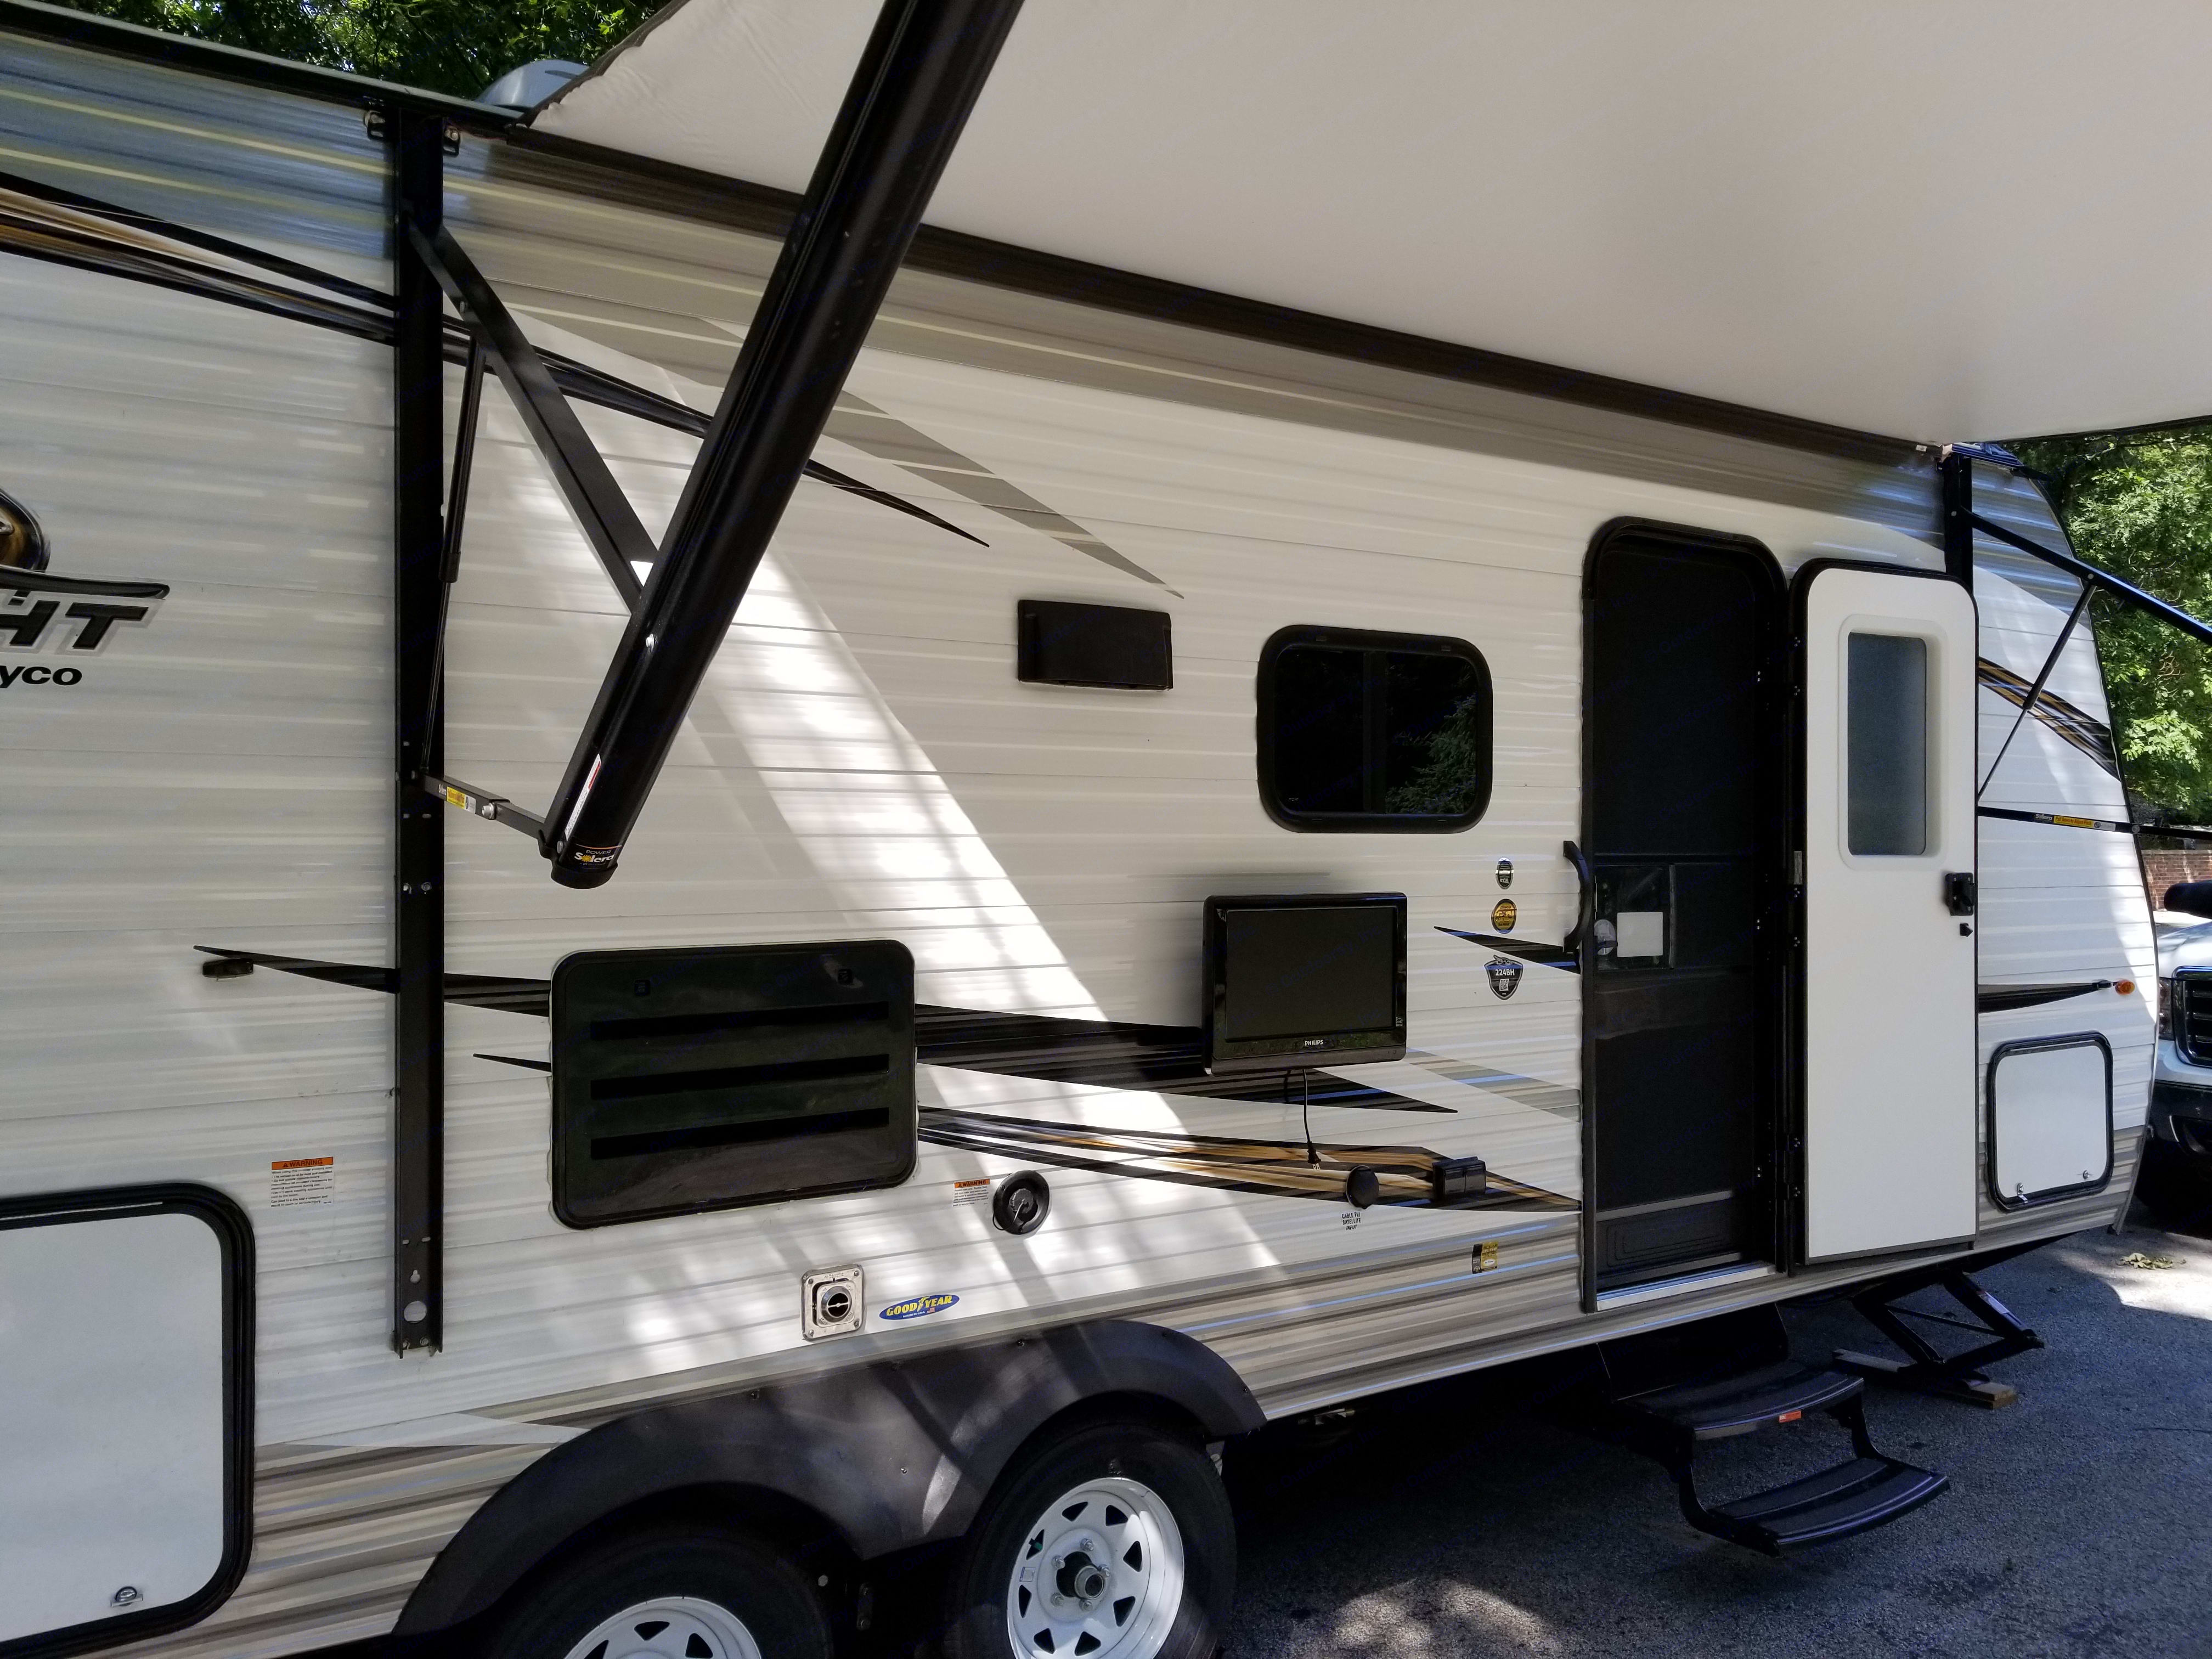 Closer view of TV mounted outside under the 13' power awning. LED strip illuminates outdoors for nighttime fun under the awning. . Jayco Jay Flight SLX 224BH 2019